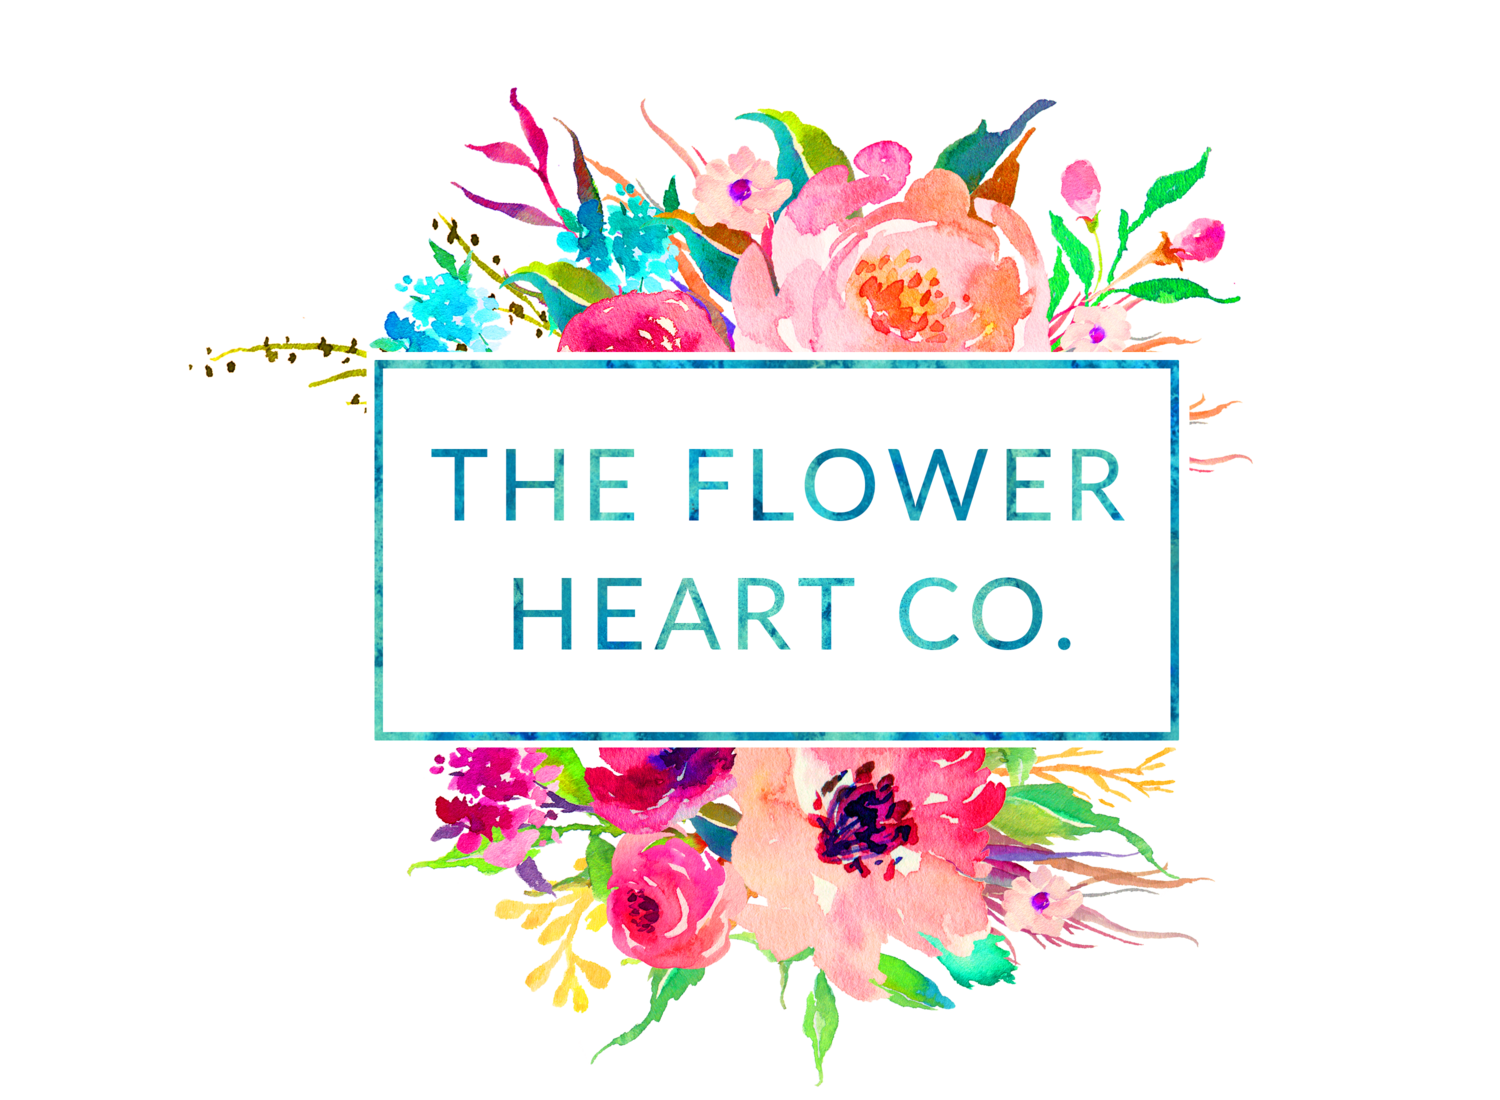 The Flower Heart Co